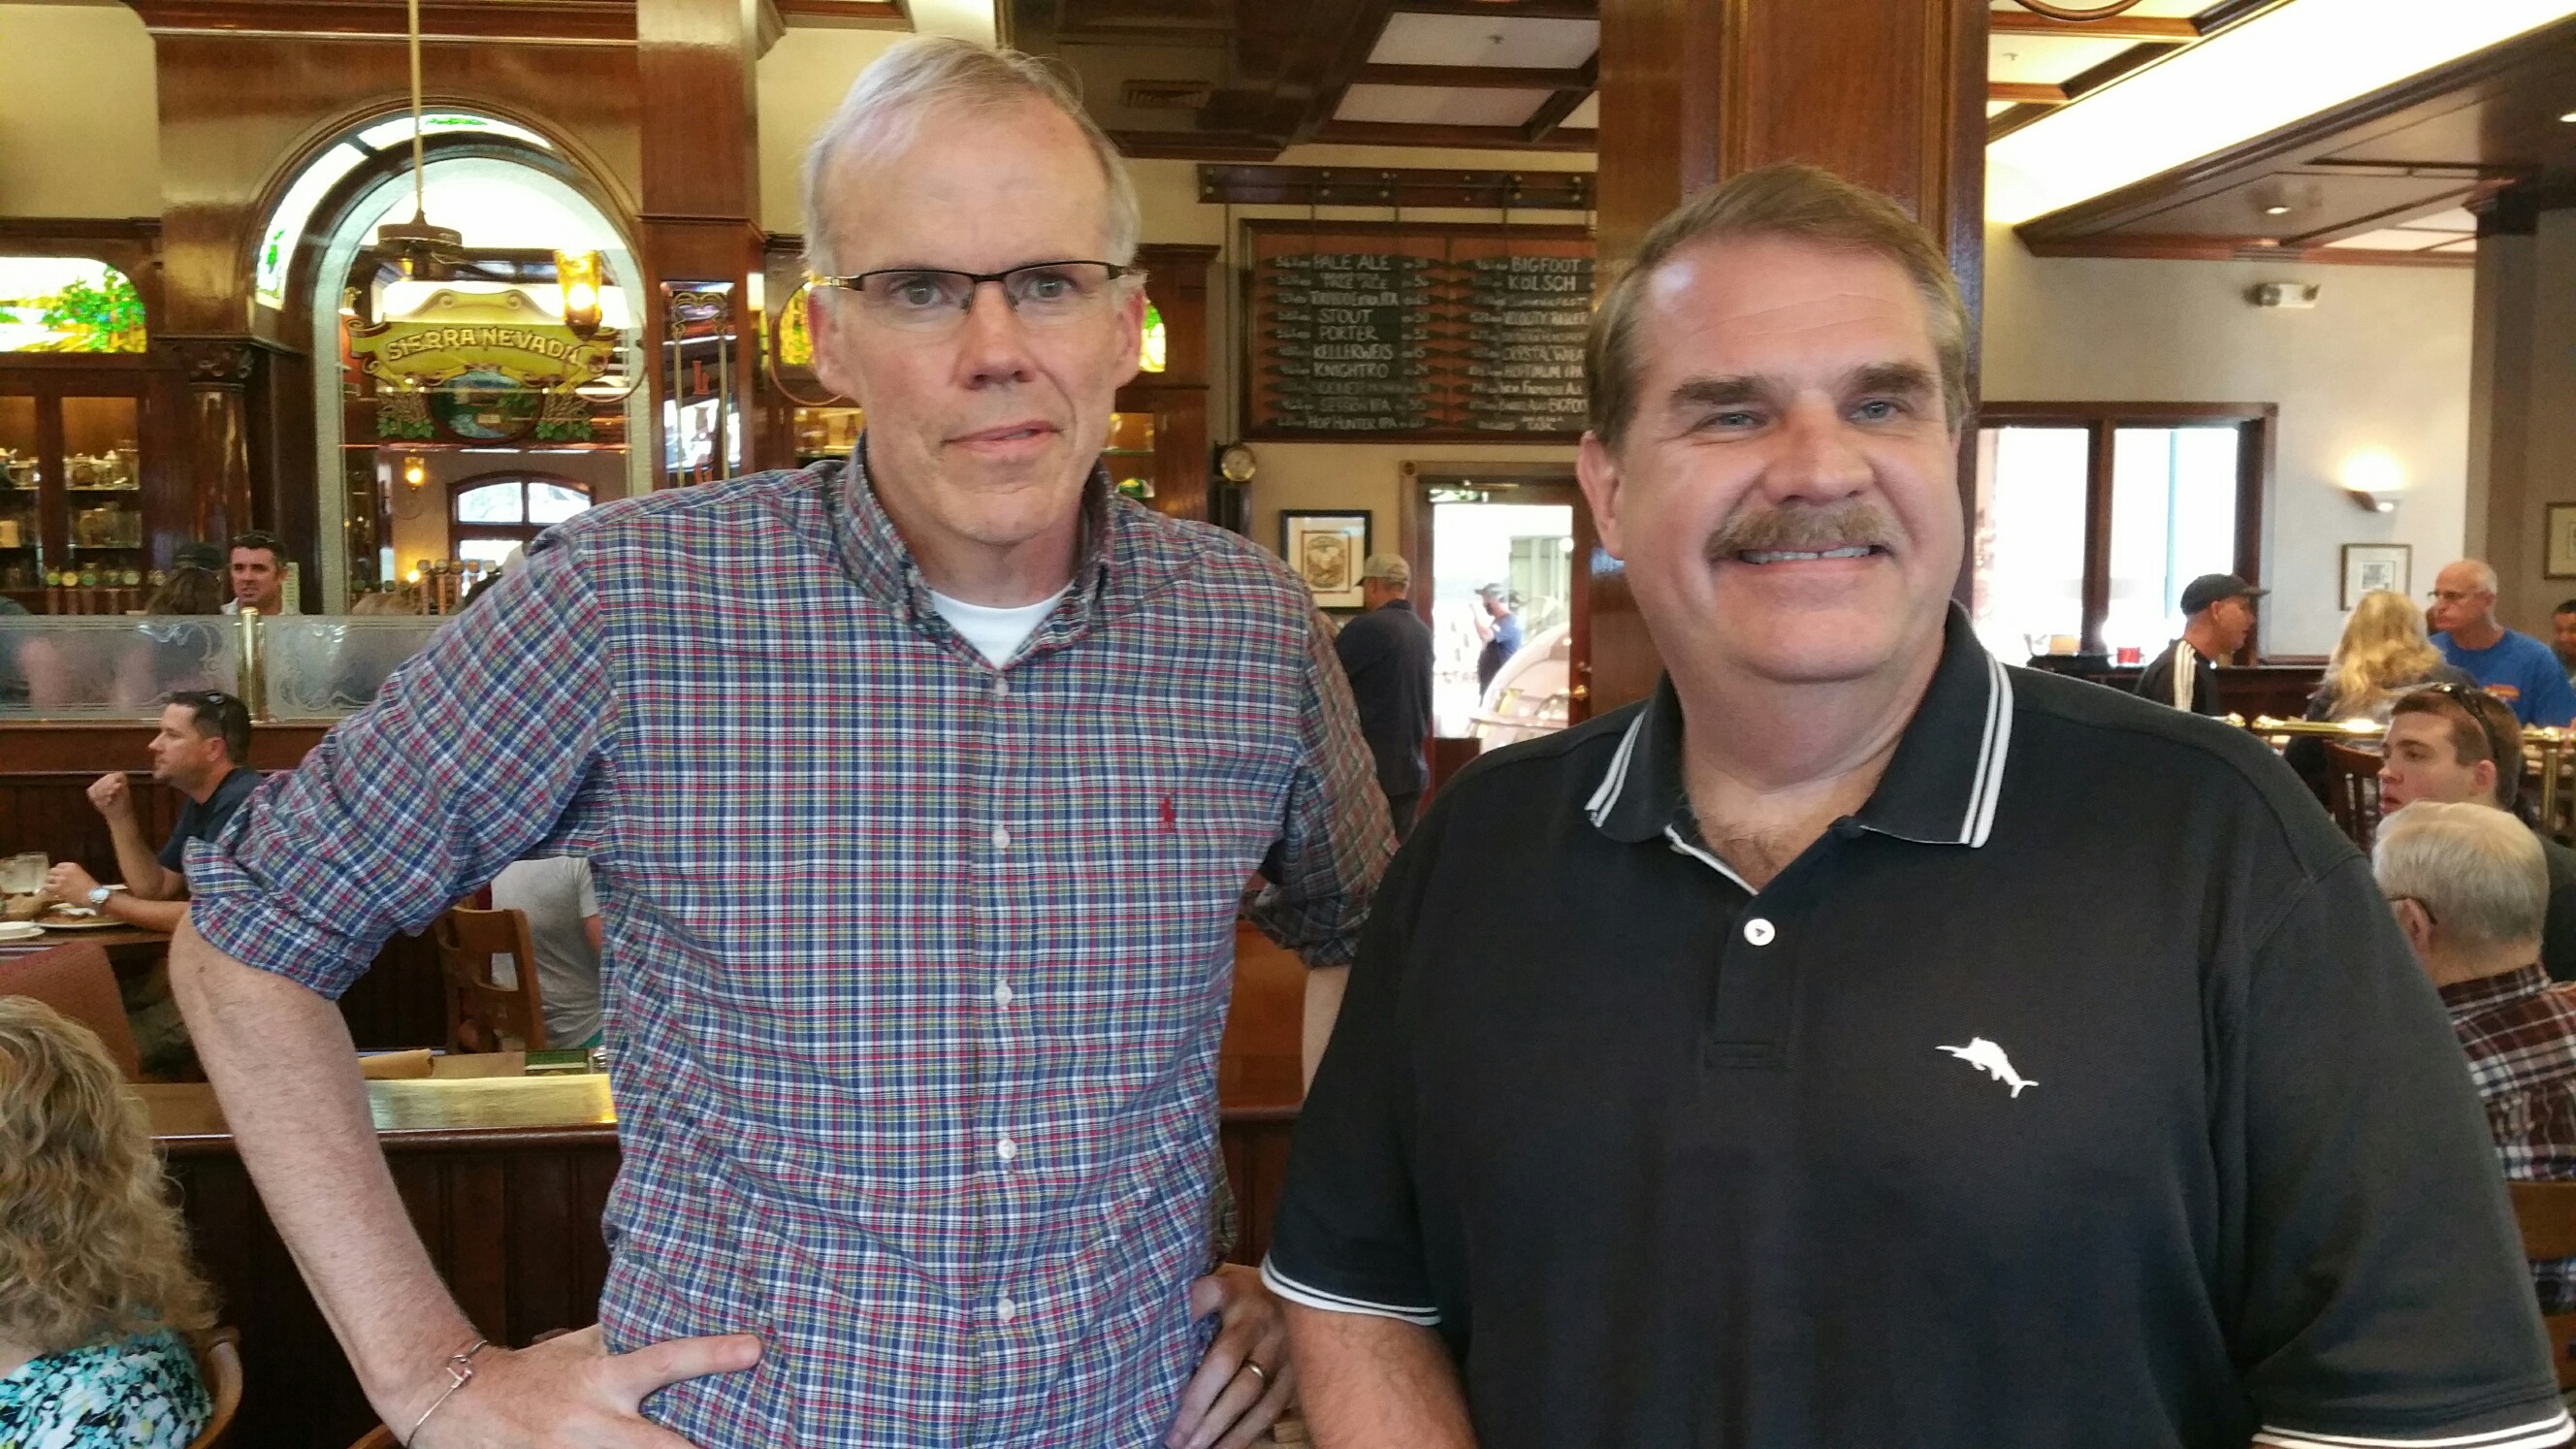 Skeptic Anthony Watts has one-on-one meeting with warmist Bill McKibben